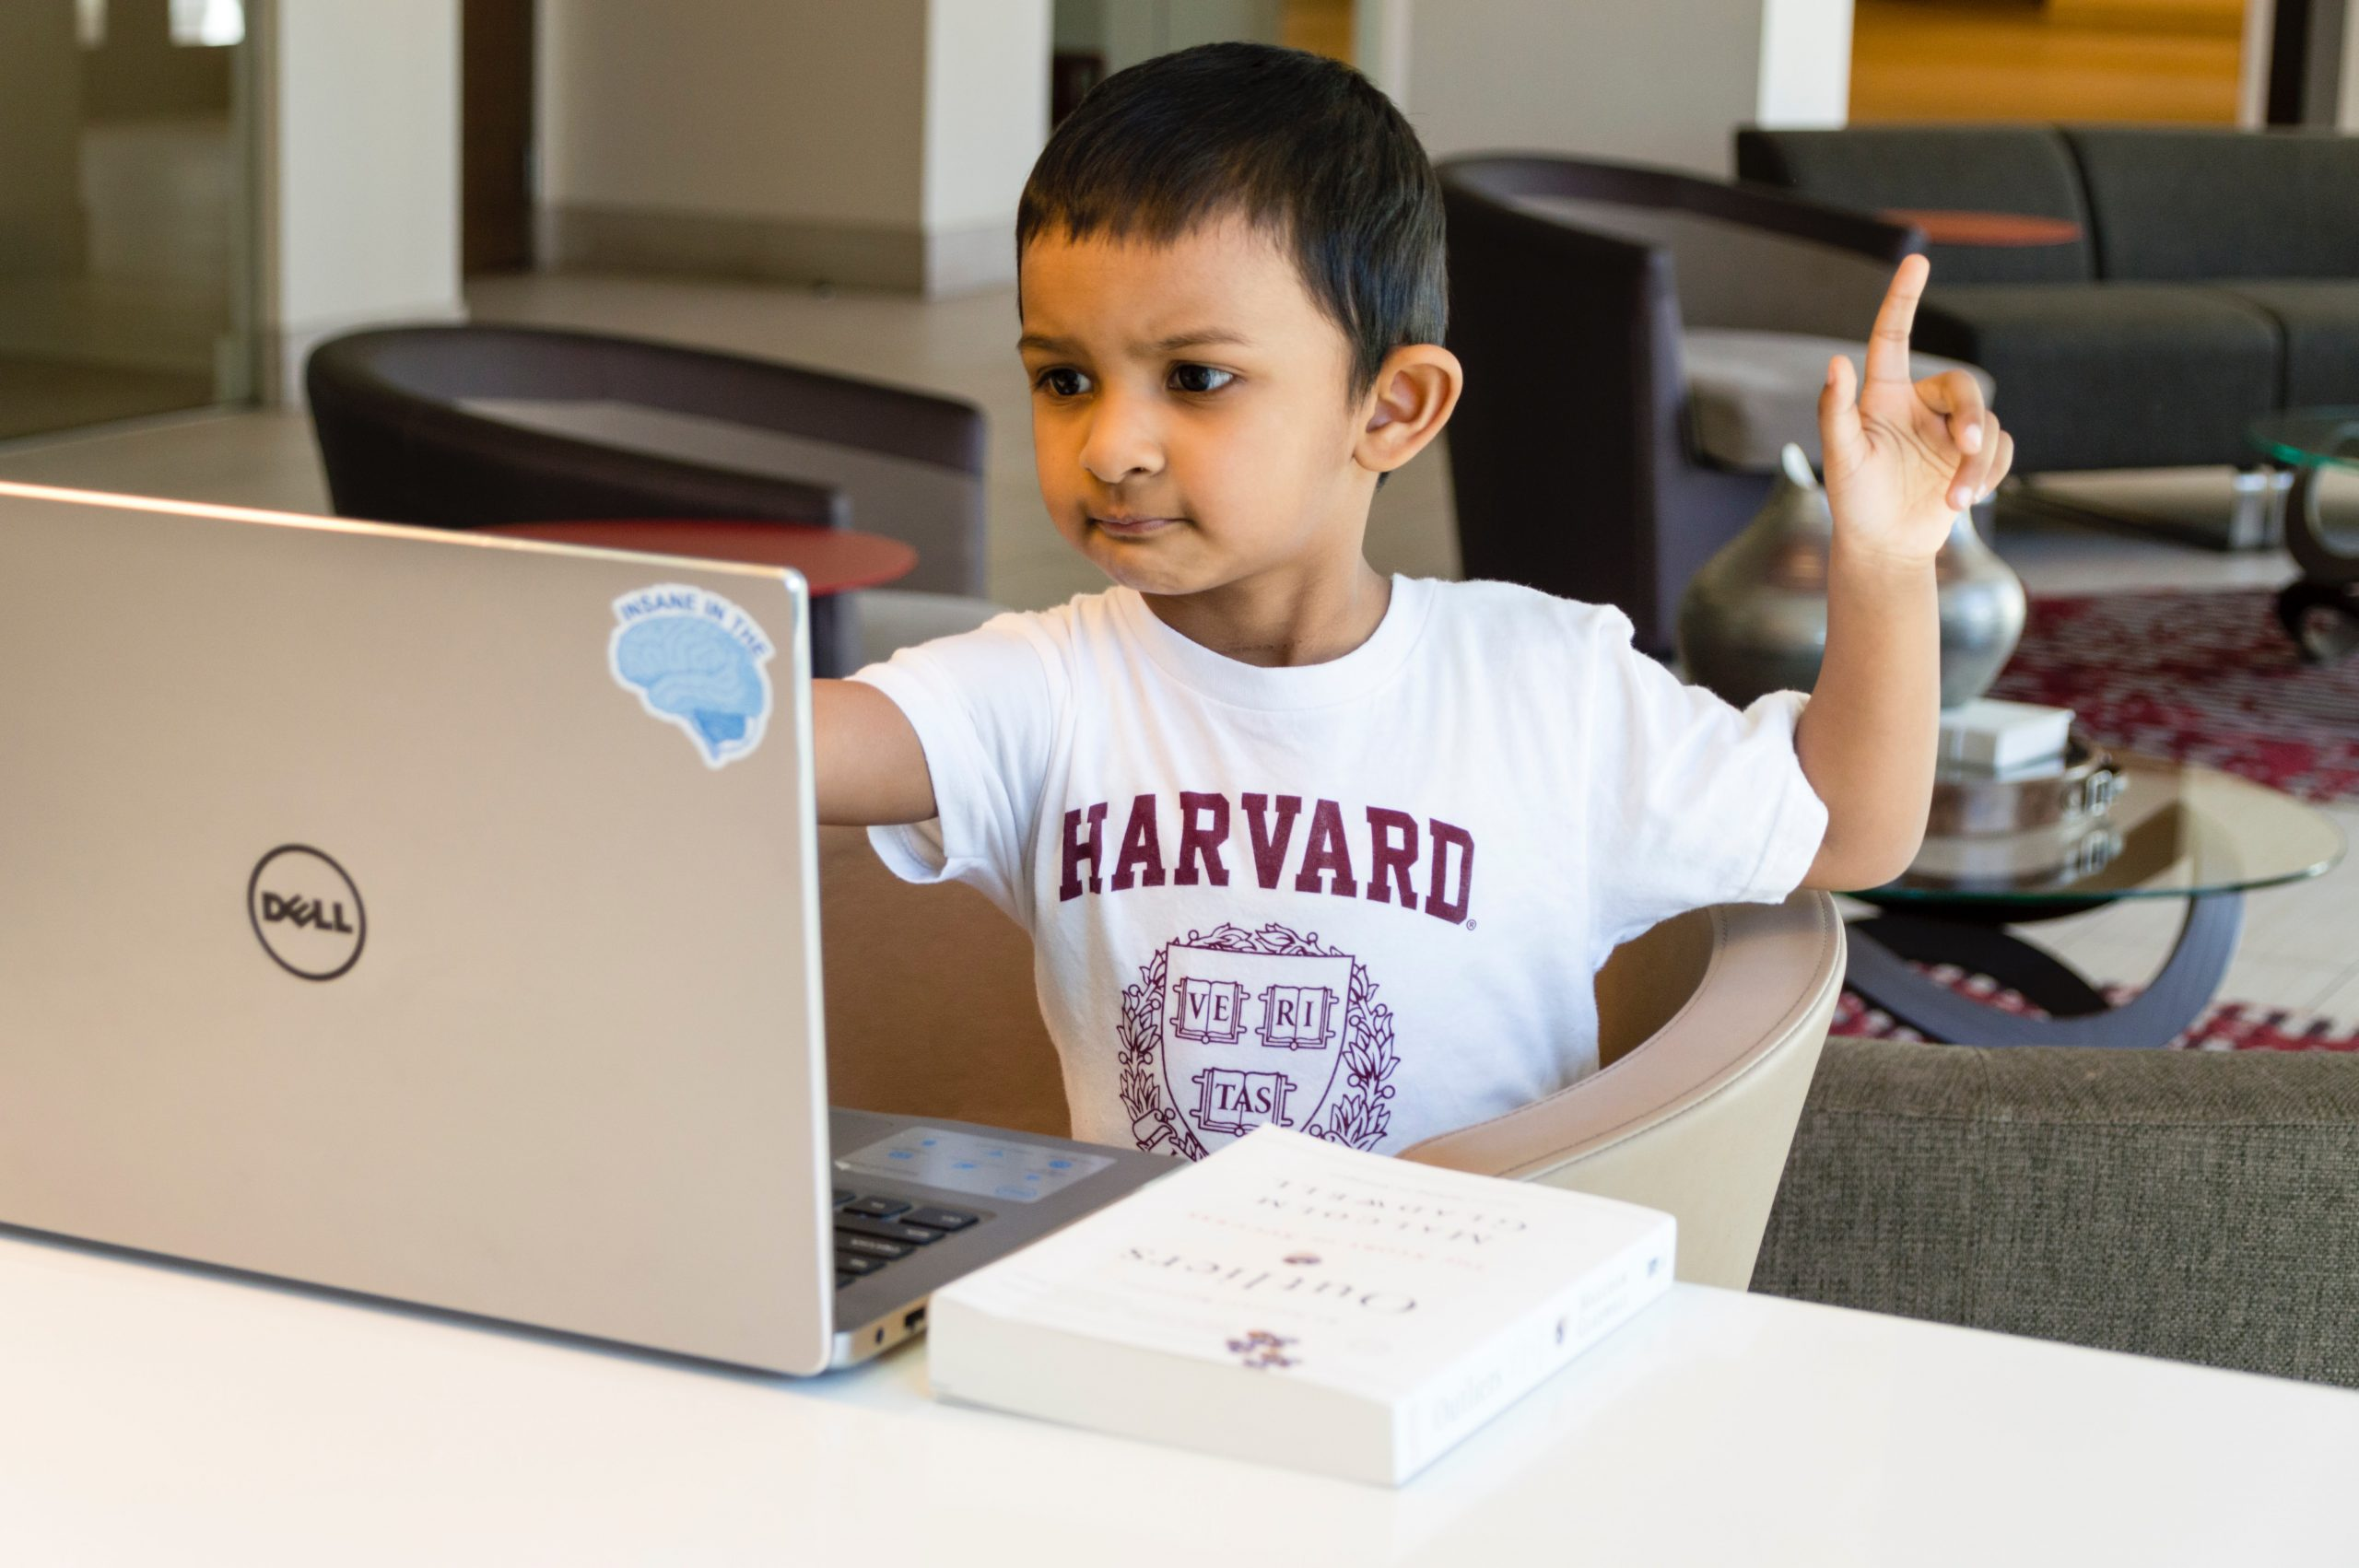 A kid in front of a laptop raising his fingering